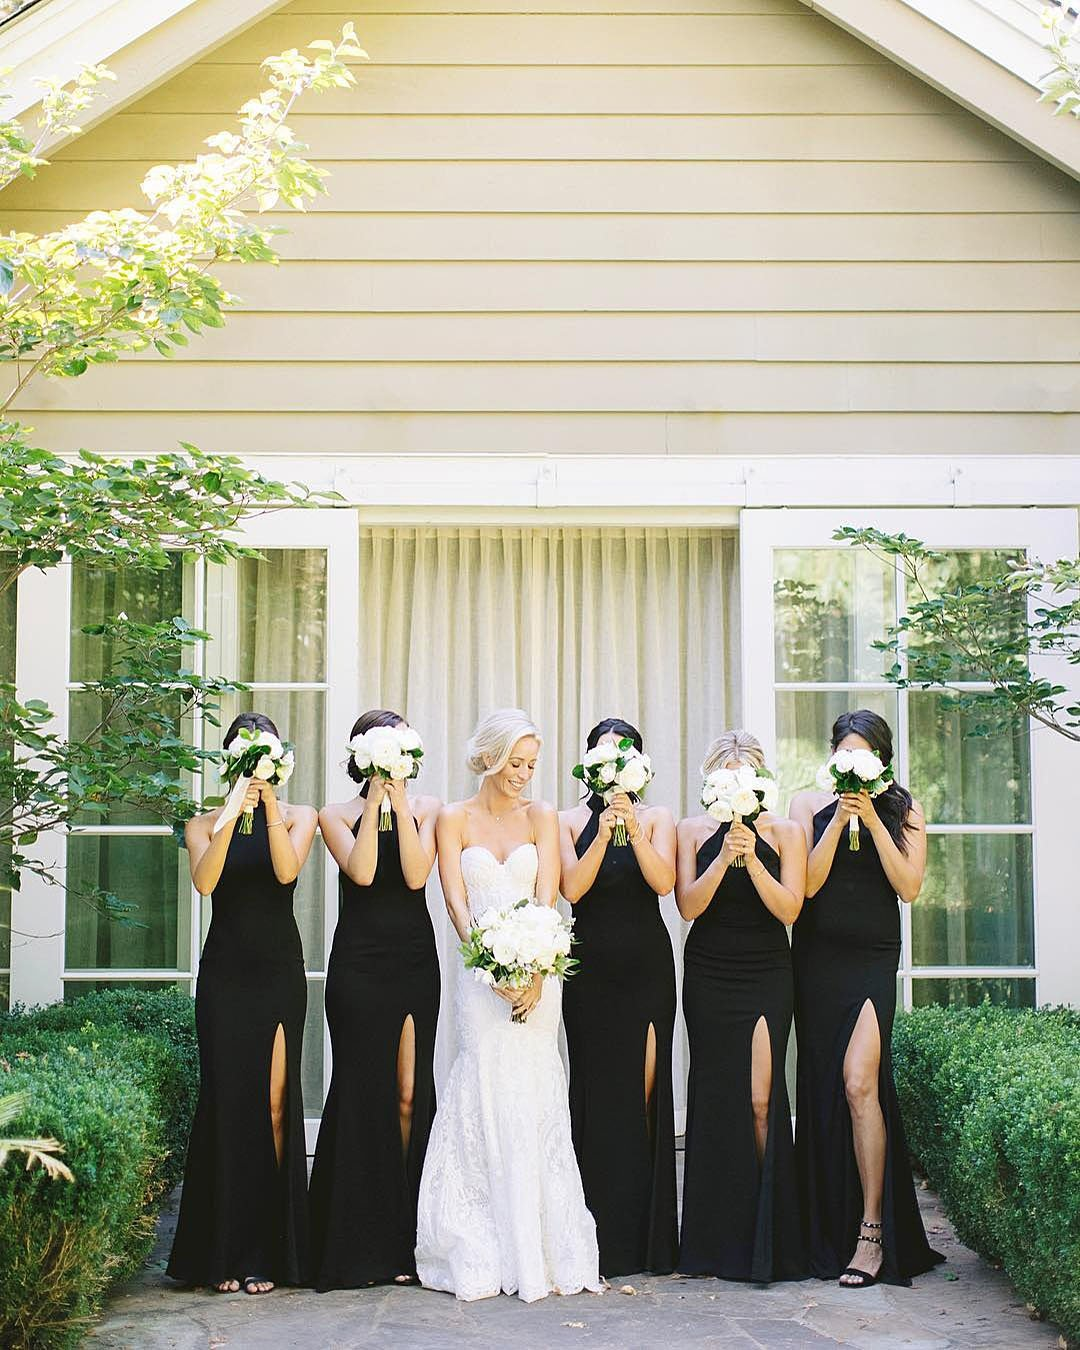 wedding colors Black White Taupe Gold Shimmery Gold bride with bridesmaids in black